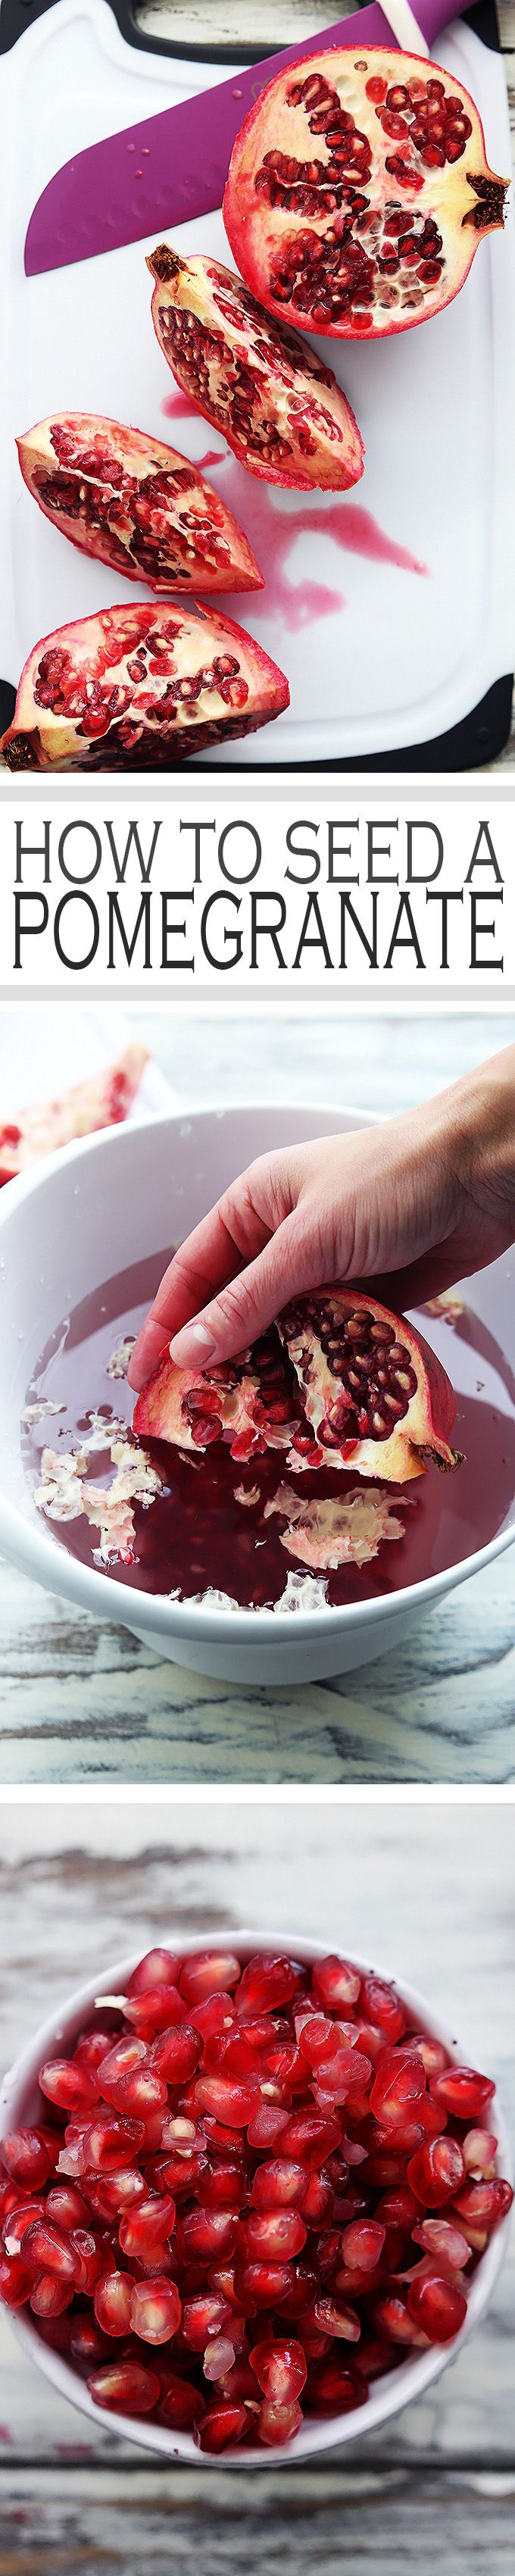 A simple step-by-step tutorial and video for how to seed a pomegranate the quick and easy way!